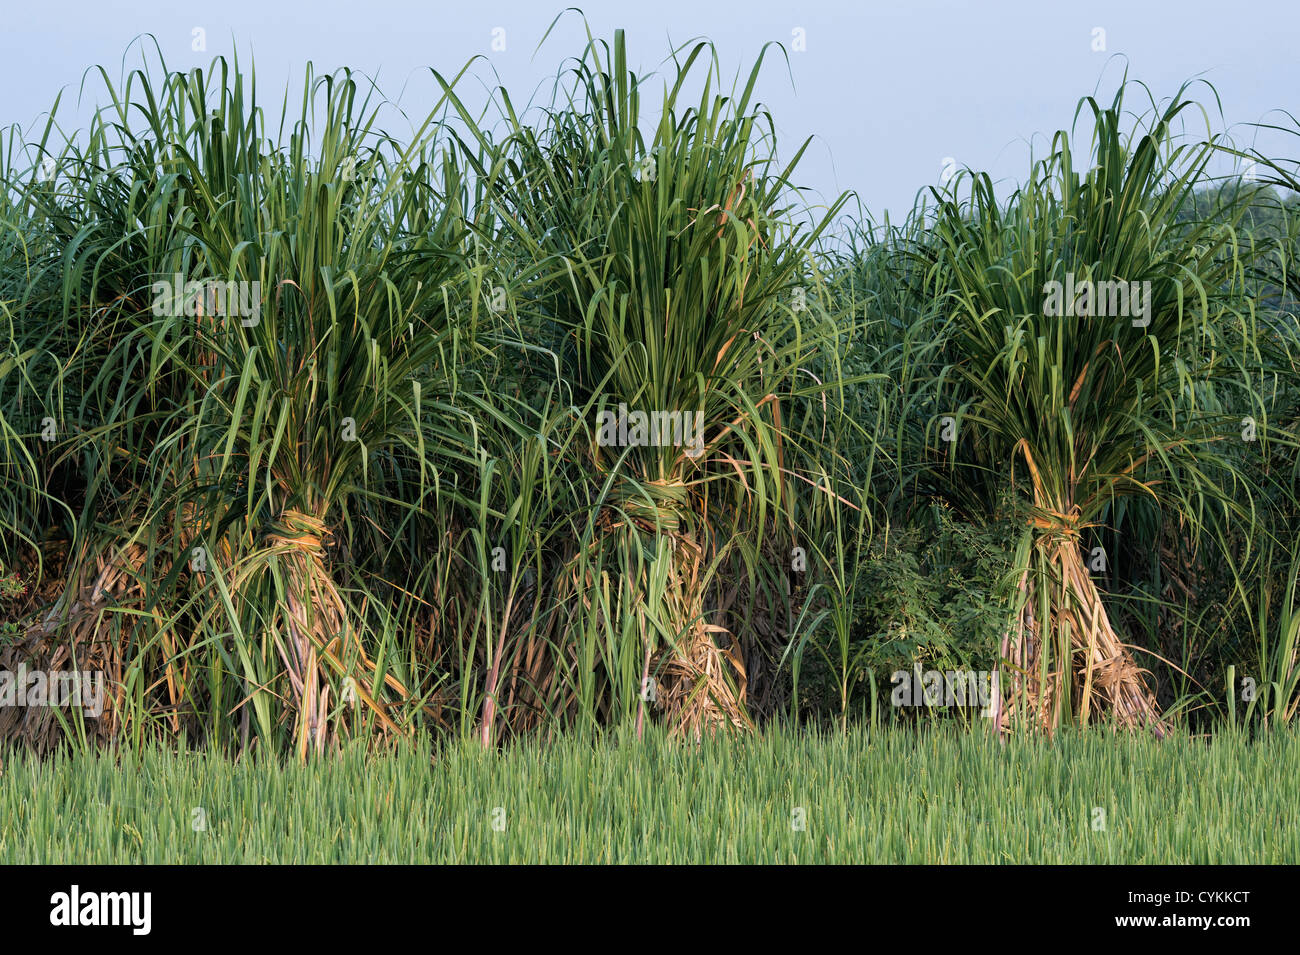 Saccharum officinarum. Sugar cane plantation in the Indian ...